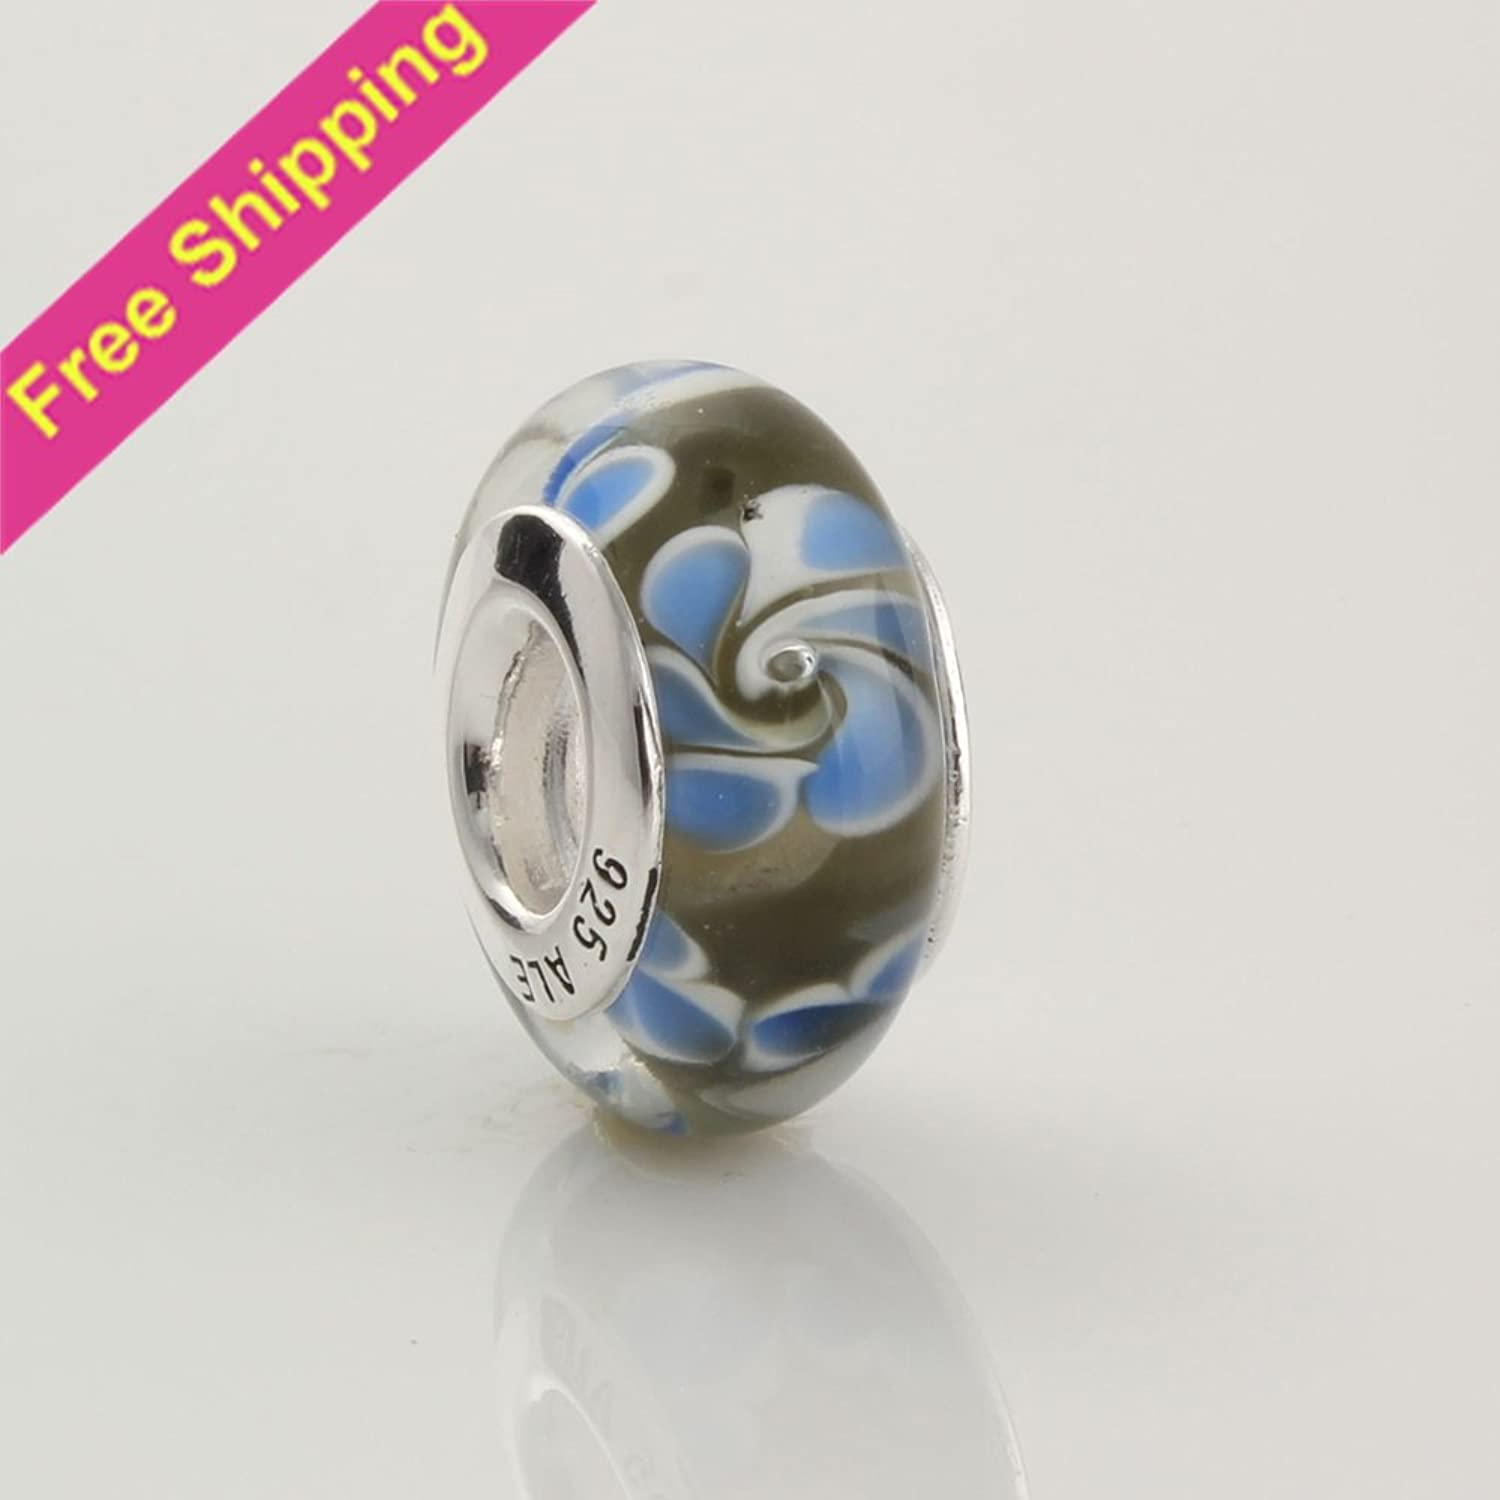 KDESIGN bluee Flower 925 Silver Core Murano Glass Thread Charm Beads Fit European Charm Bracelets Necklaces 49030